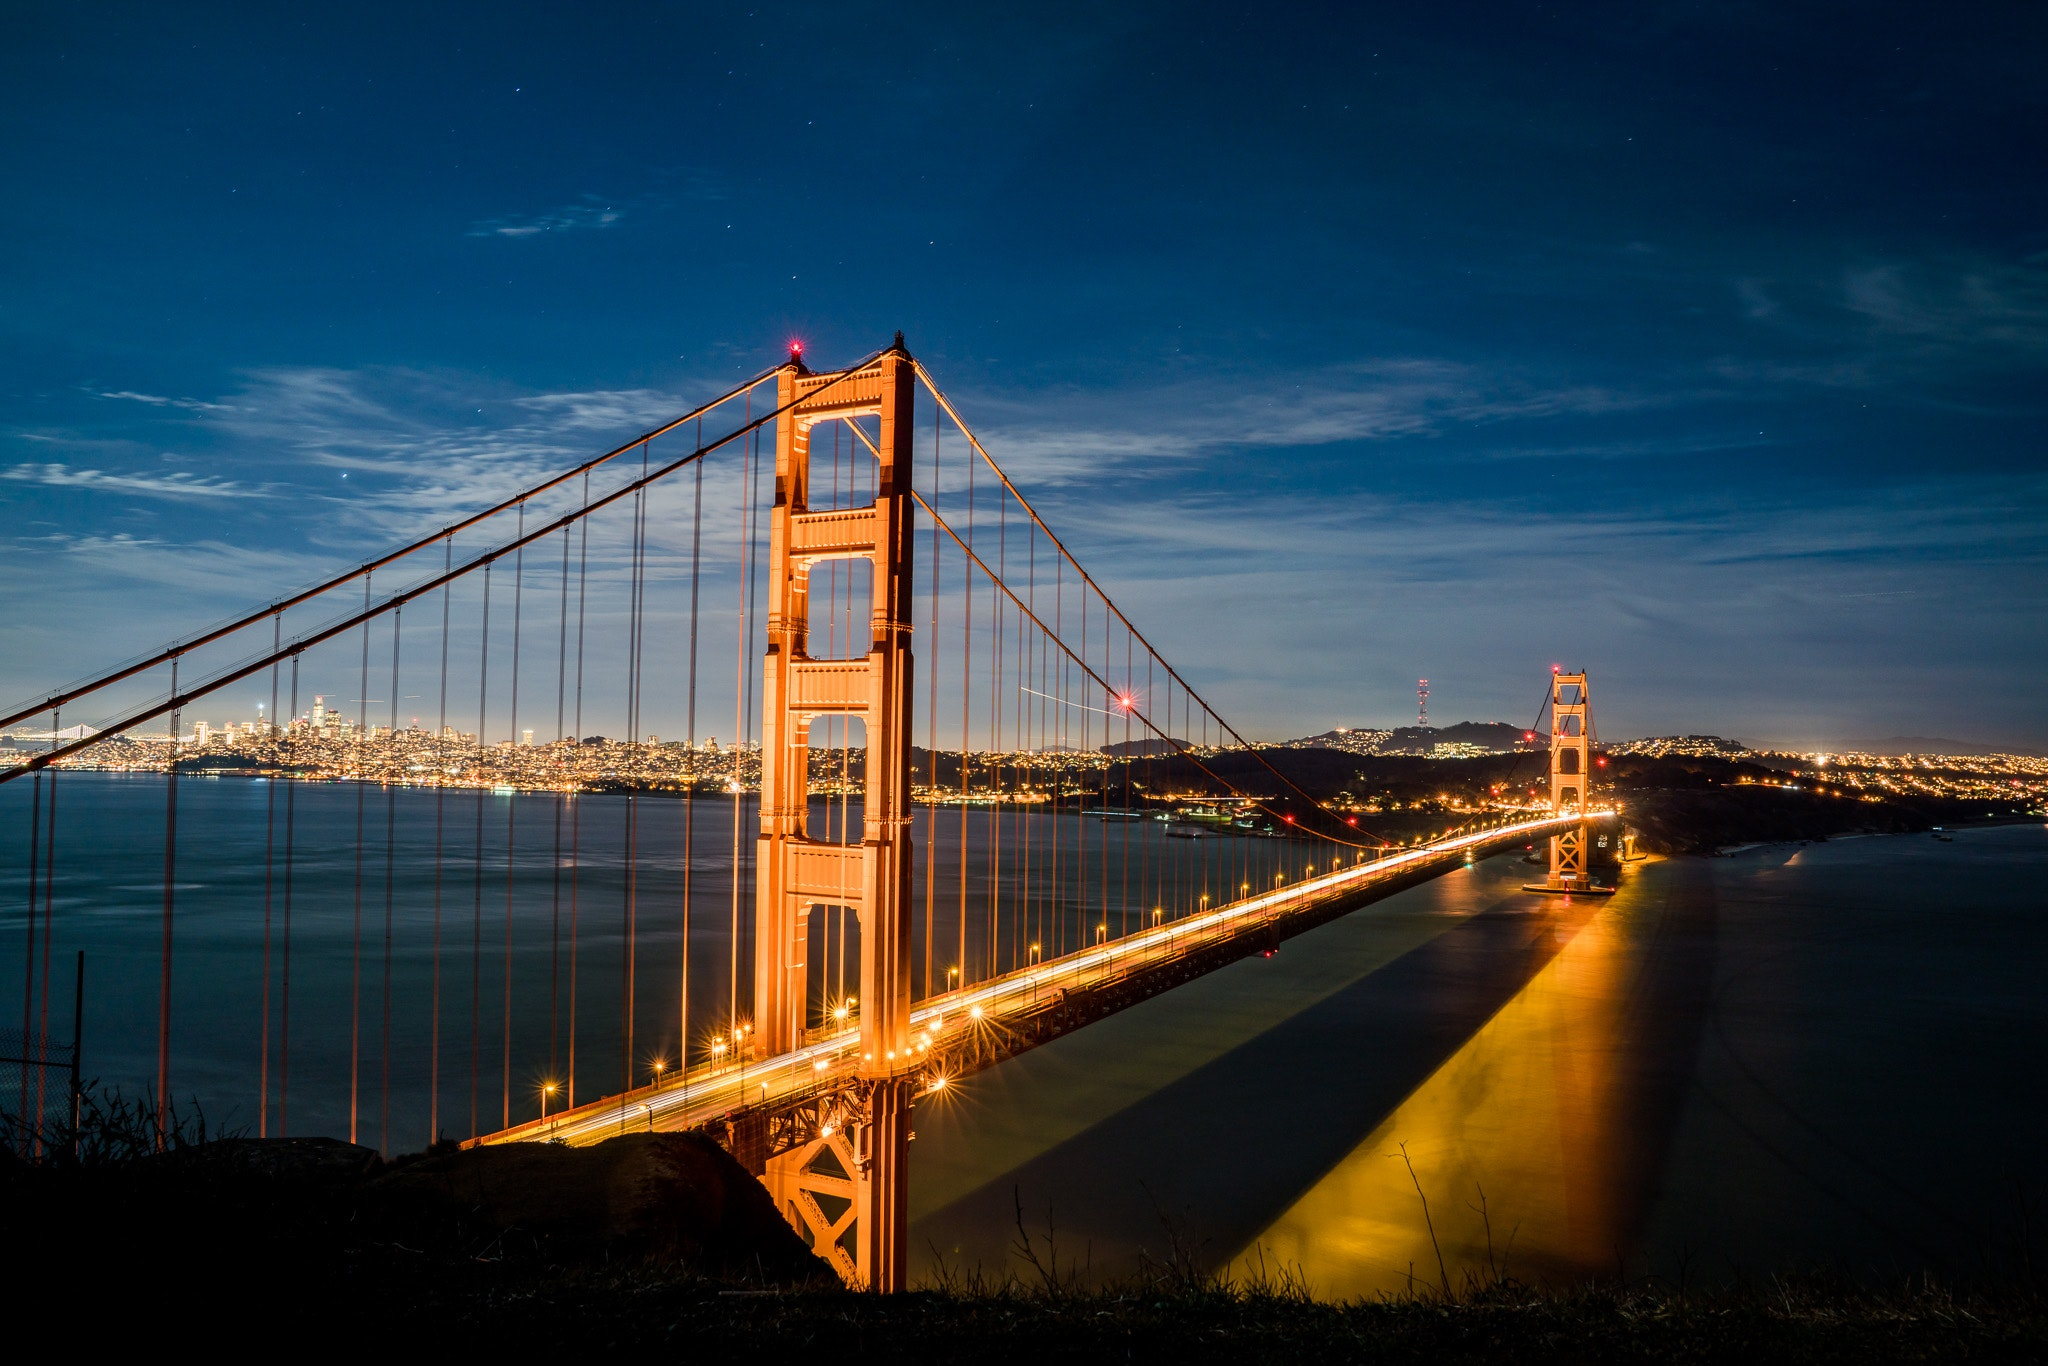 Golden Gate Bridge, Sunset, Suspension, Steel, Sky, HQ Photo